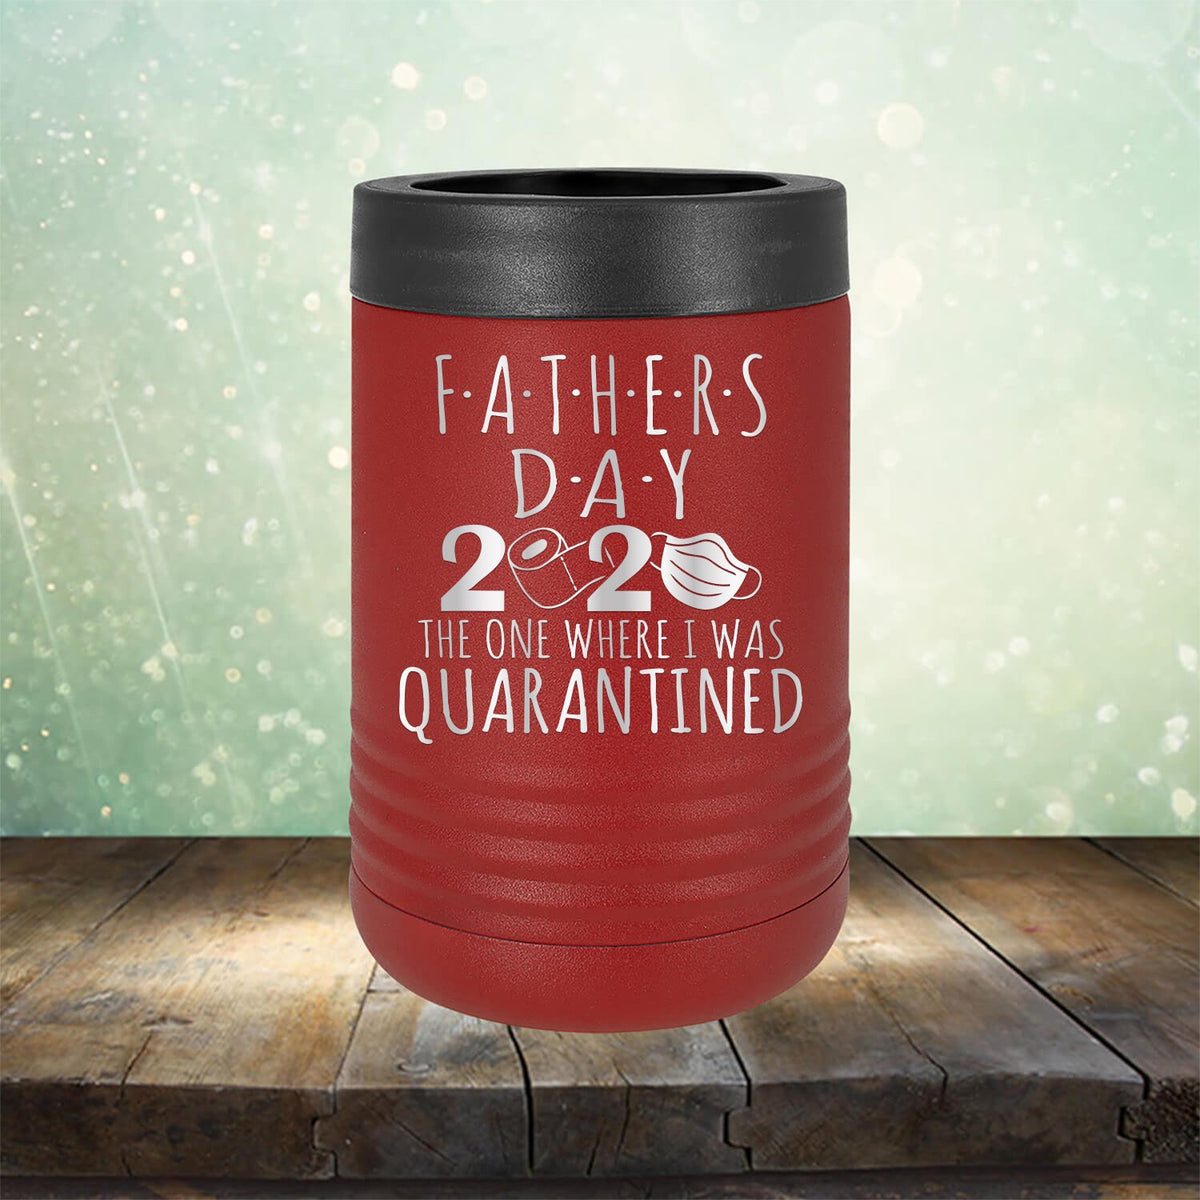 Fathers Day 2020 The One Where I Was Quarantined